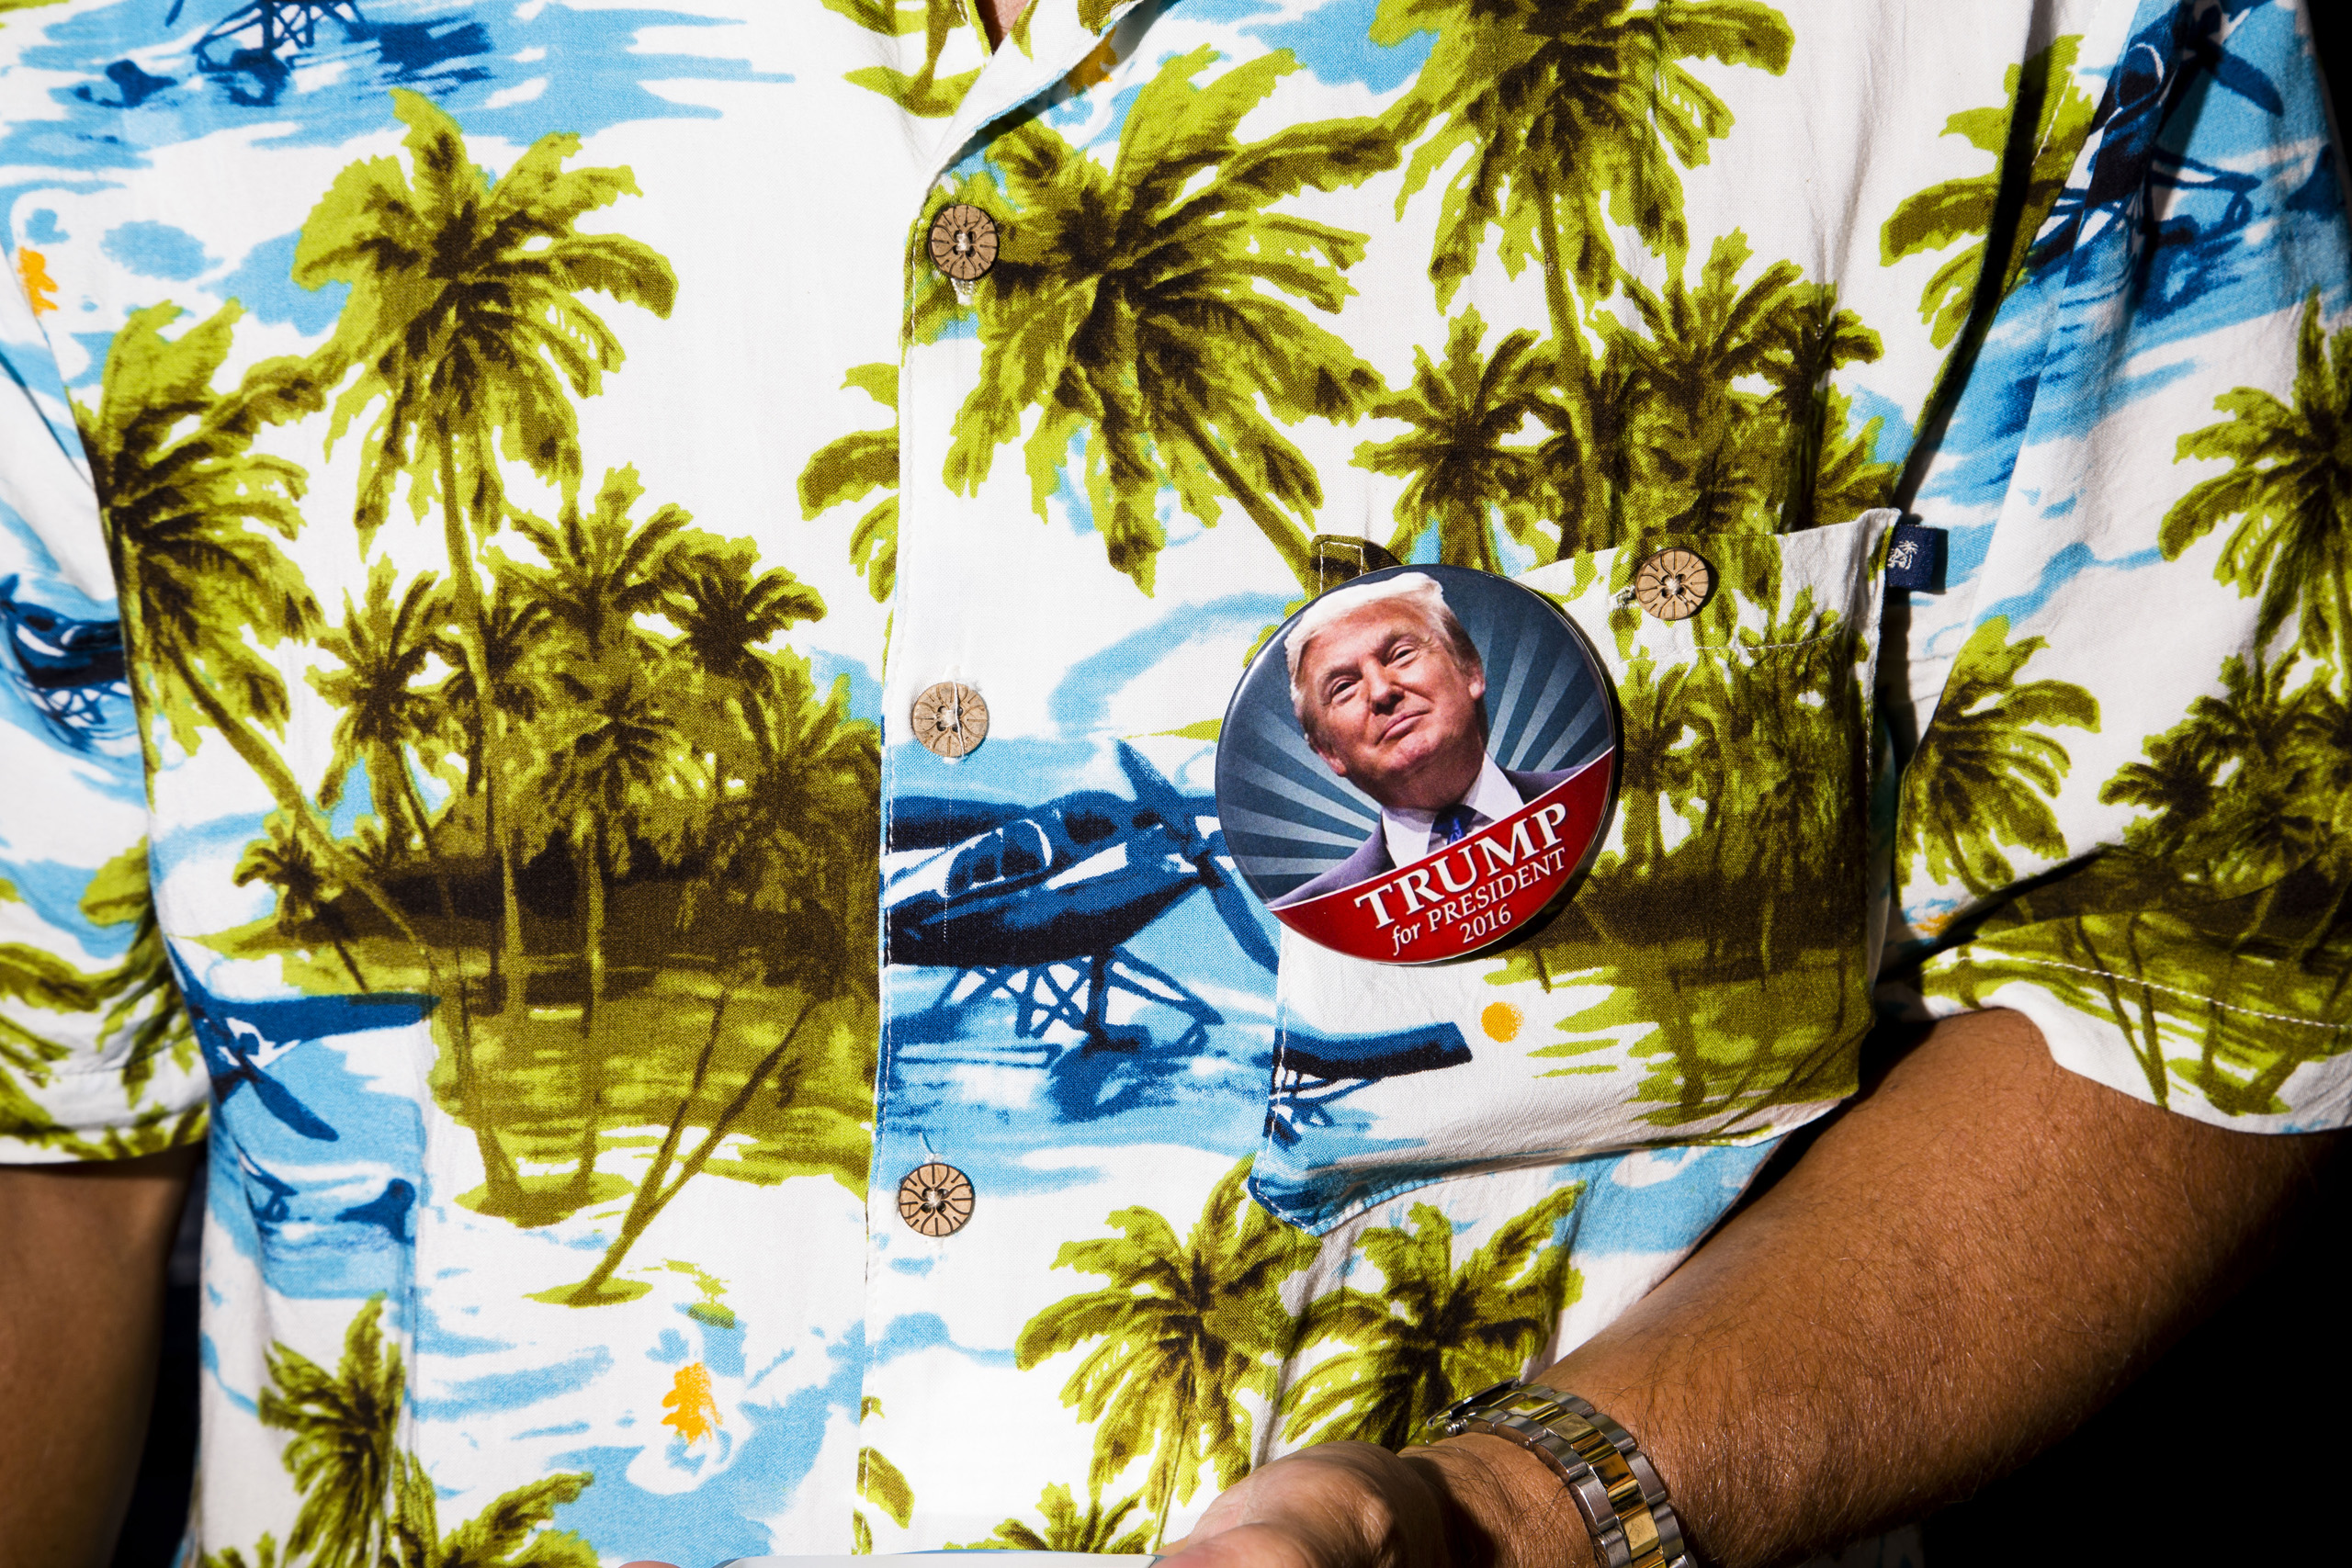 Presidential candidate Donald Trump campaigns at the Robarts Arena in Sarasota, Fla. Nov. 28, 2015.